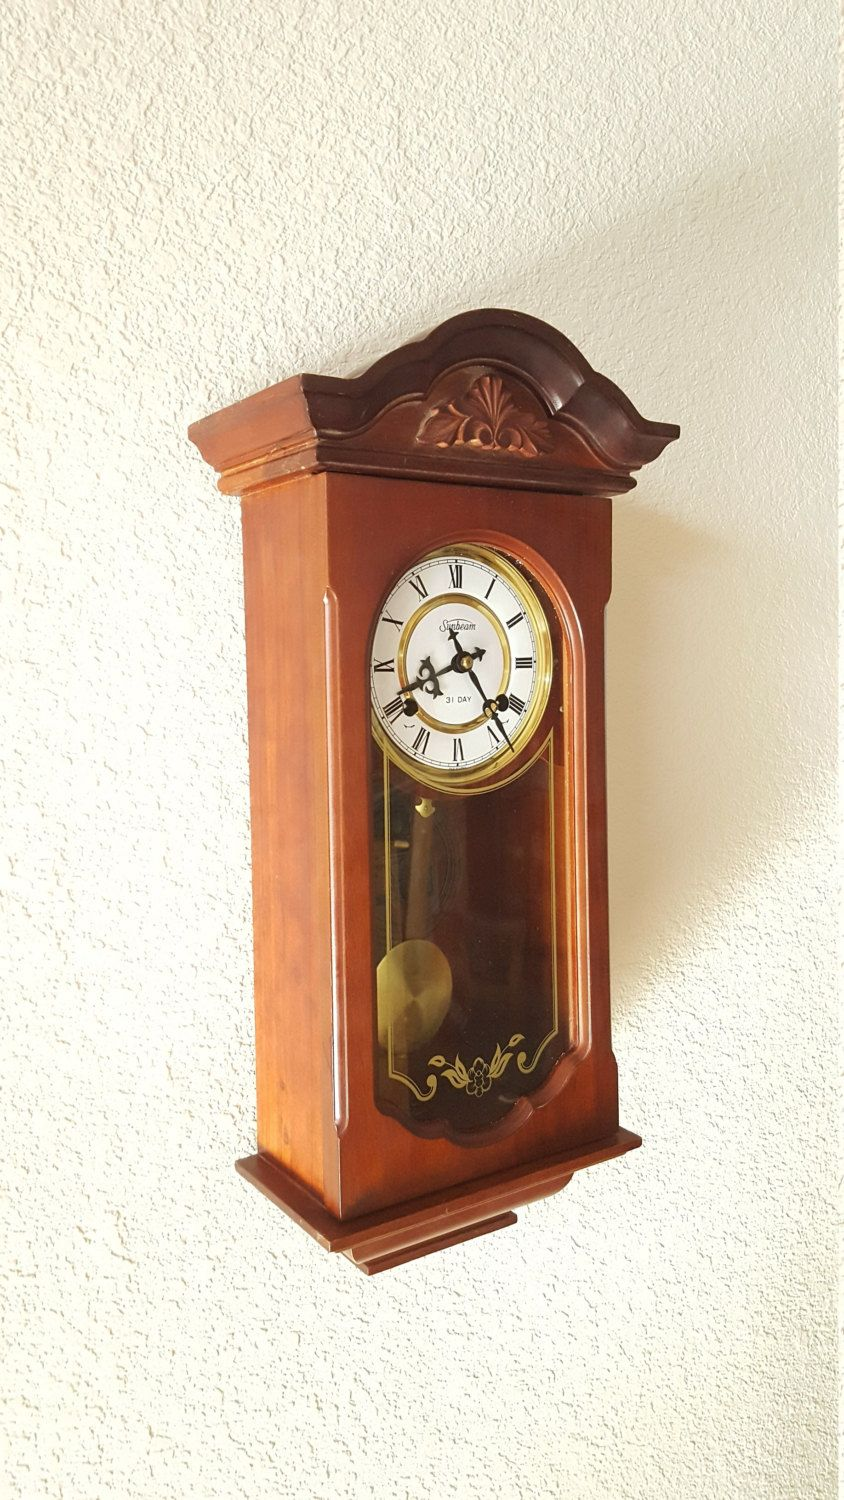 Vintage antique sunbeam brand 31 day key wind chiming parlor vintage antique sunbeam brand key wind chiming parlor wall clock professionally restored with warranty by theclockguys on etsy amipublicfo Images